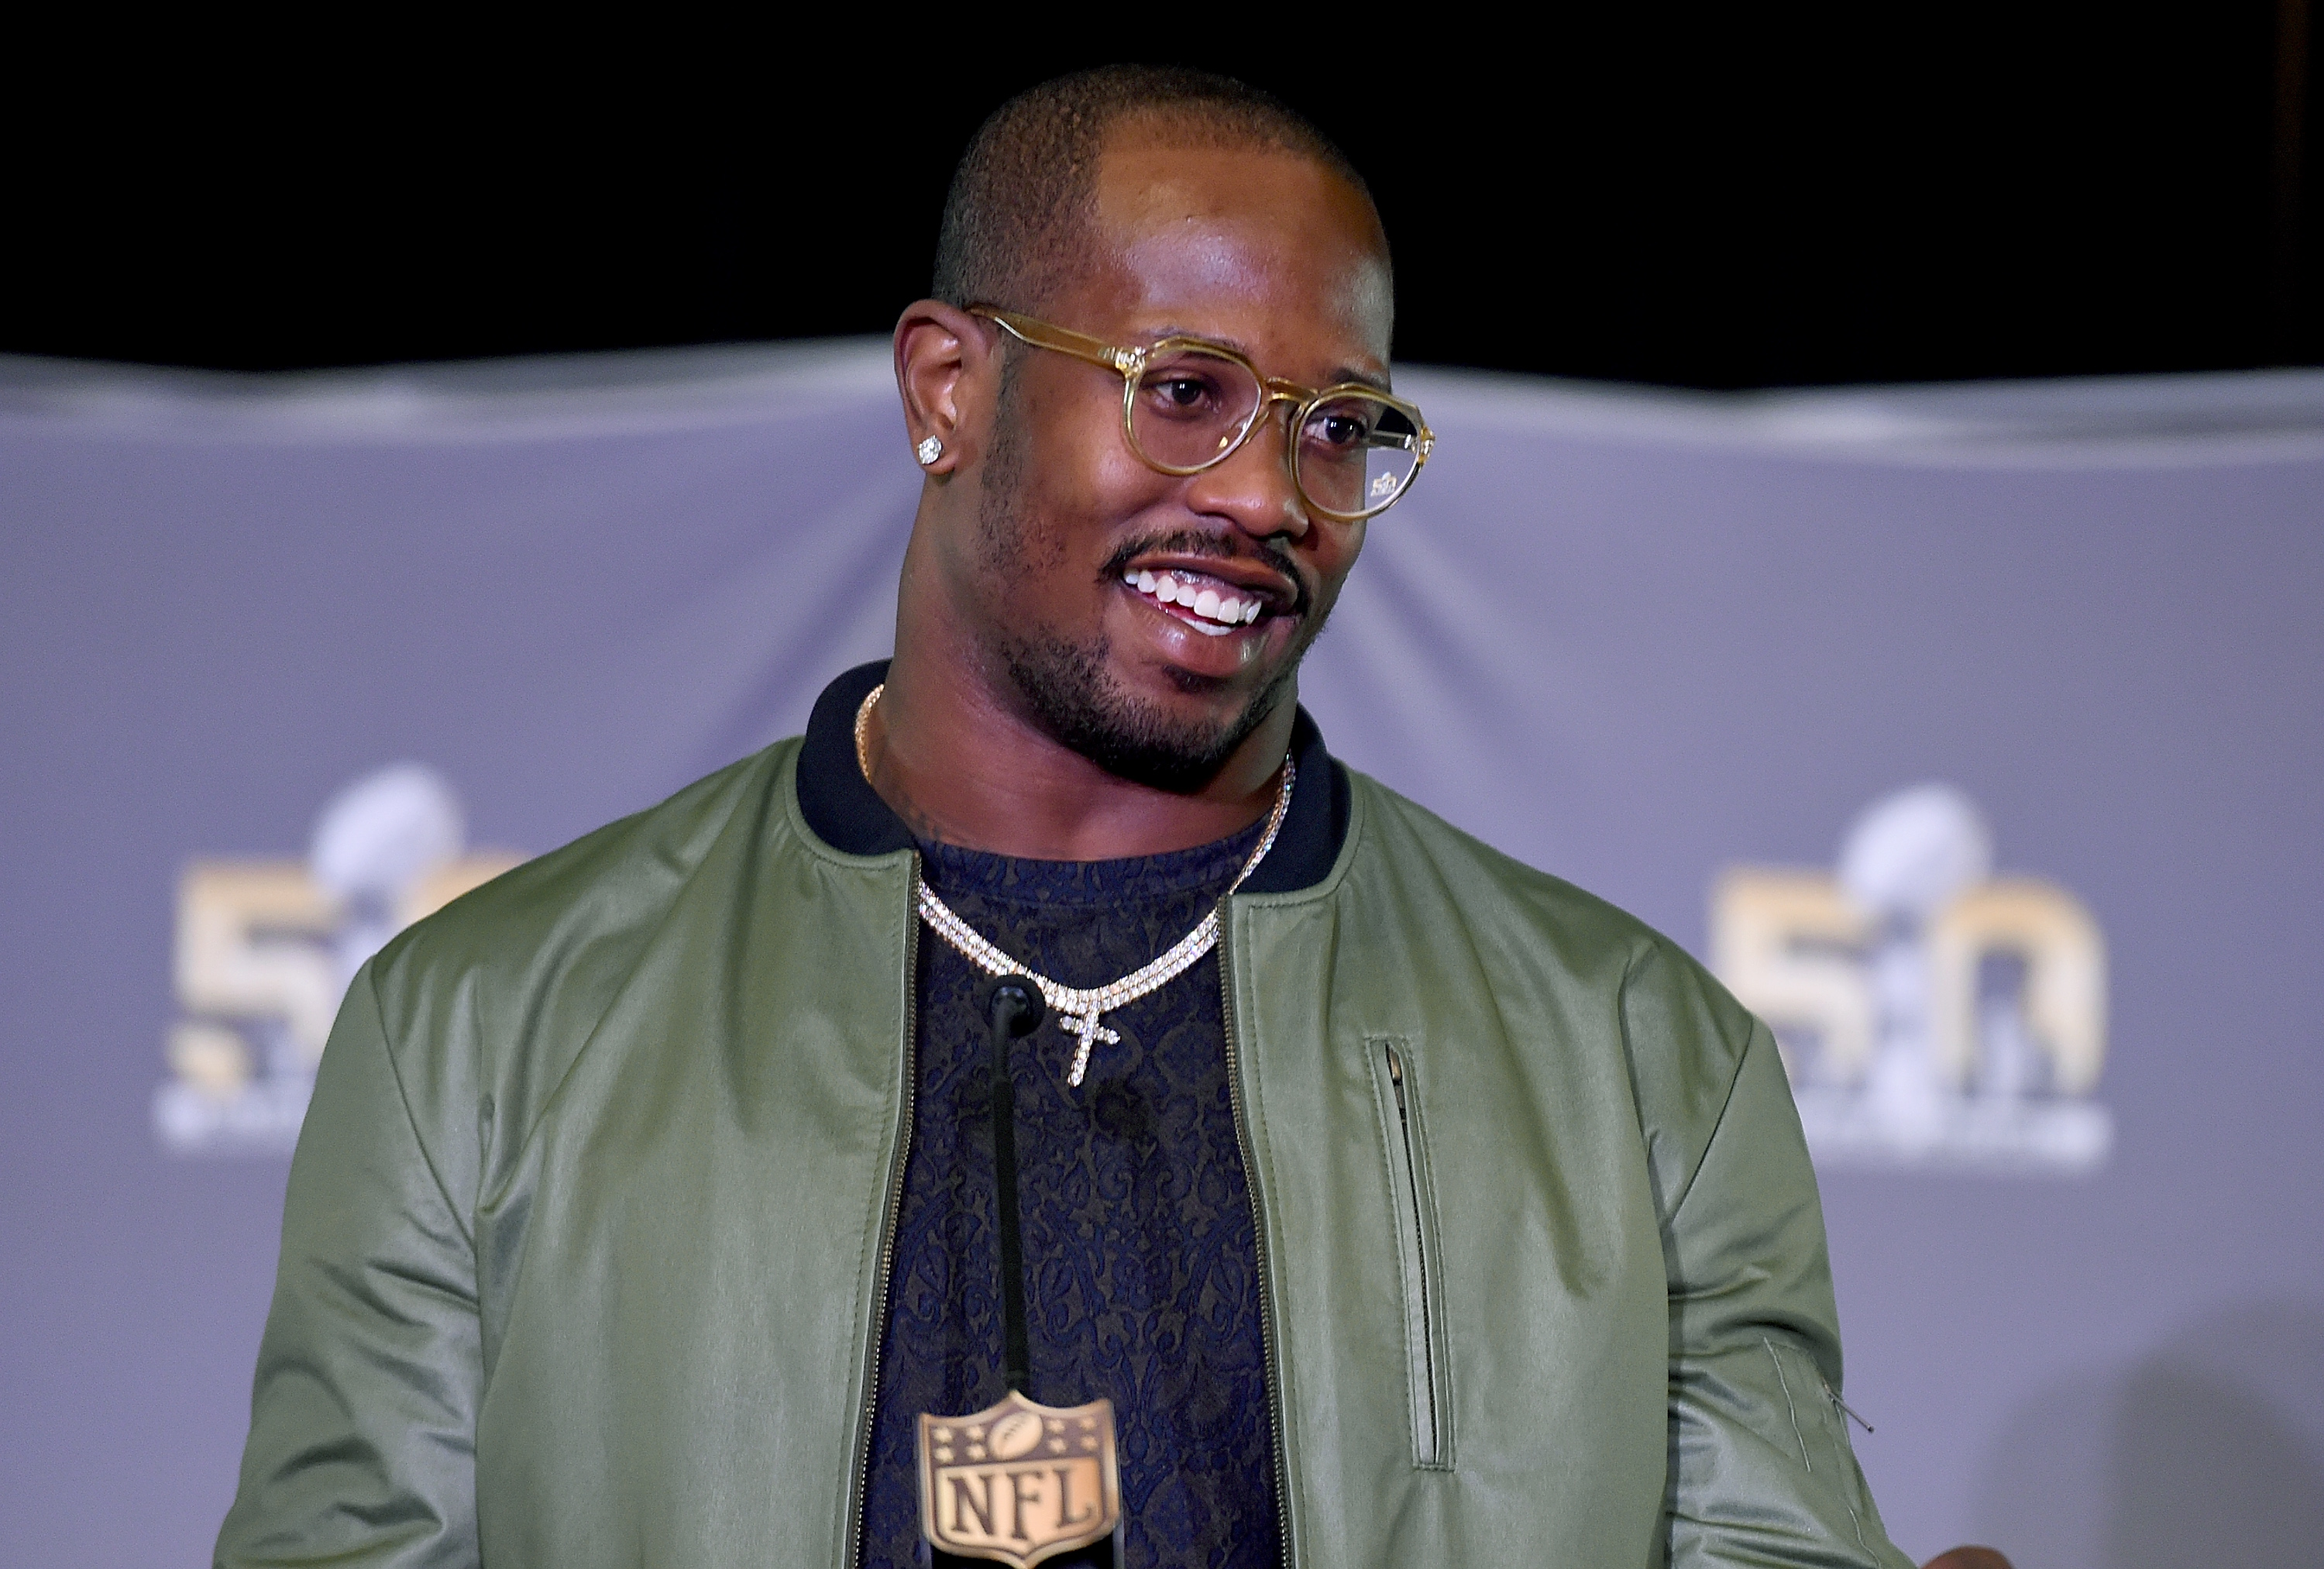 Von Miller is a Bronco Reaches agreement on 6 year contract